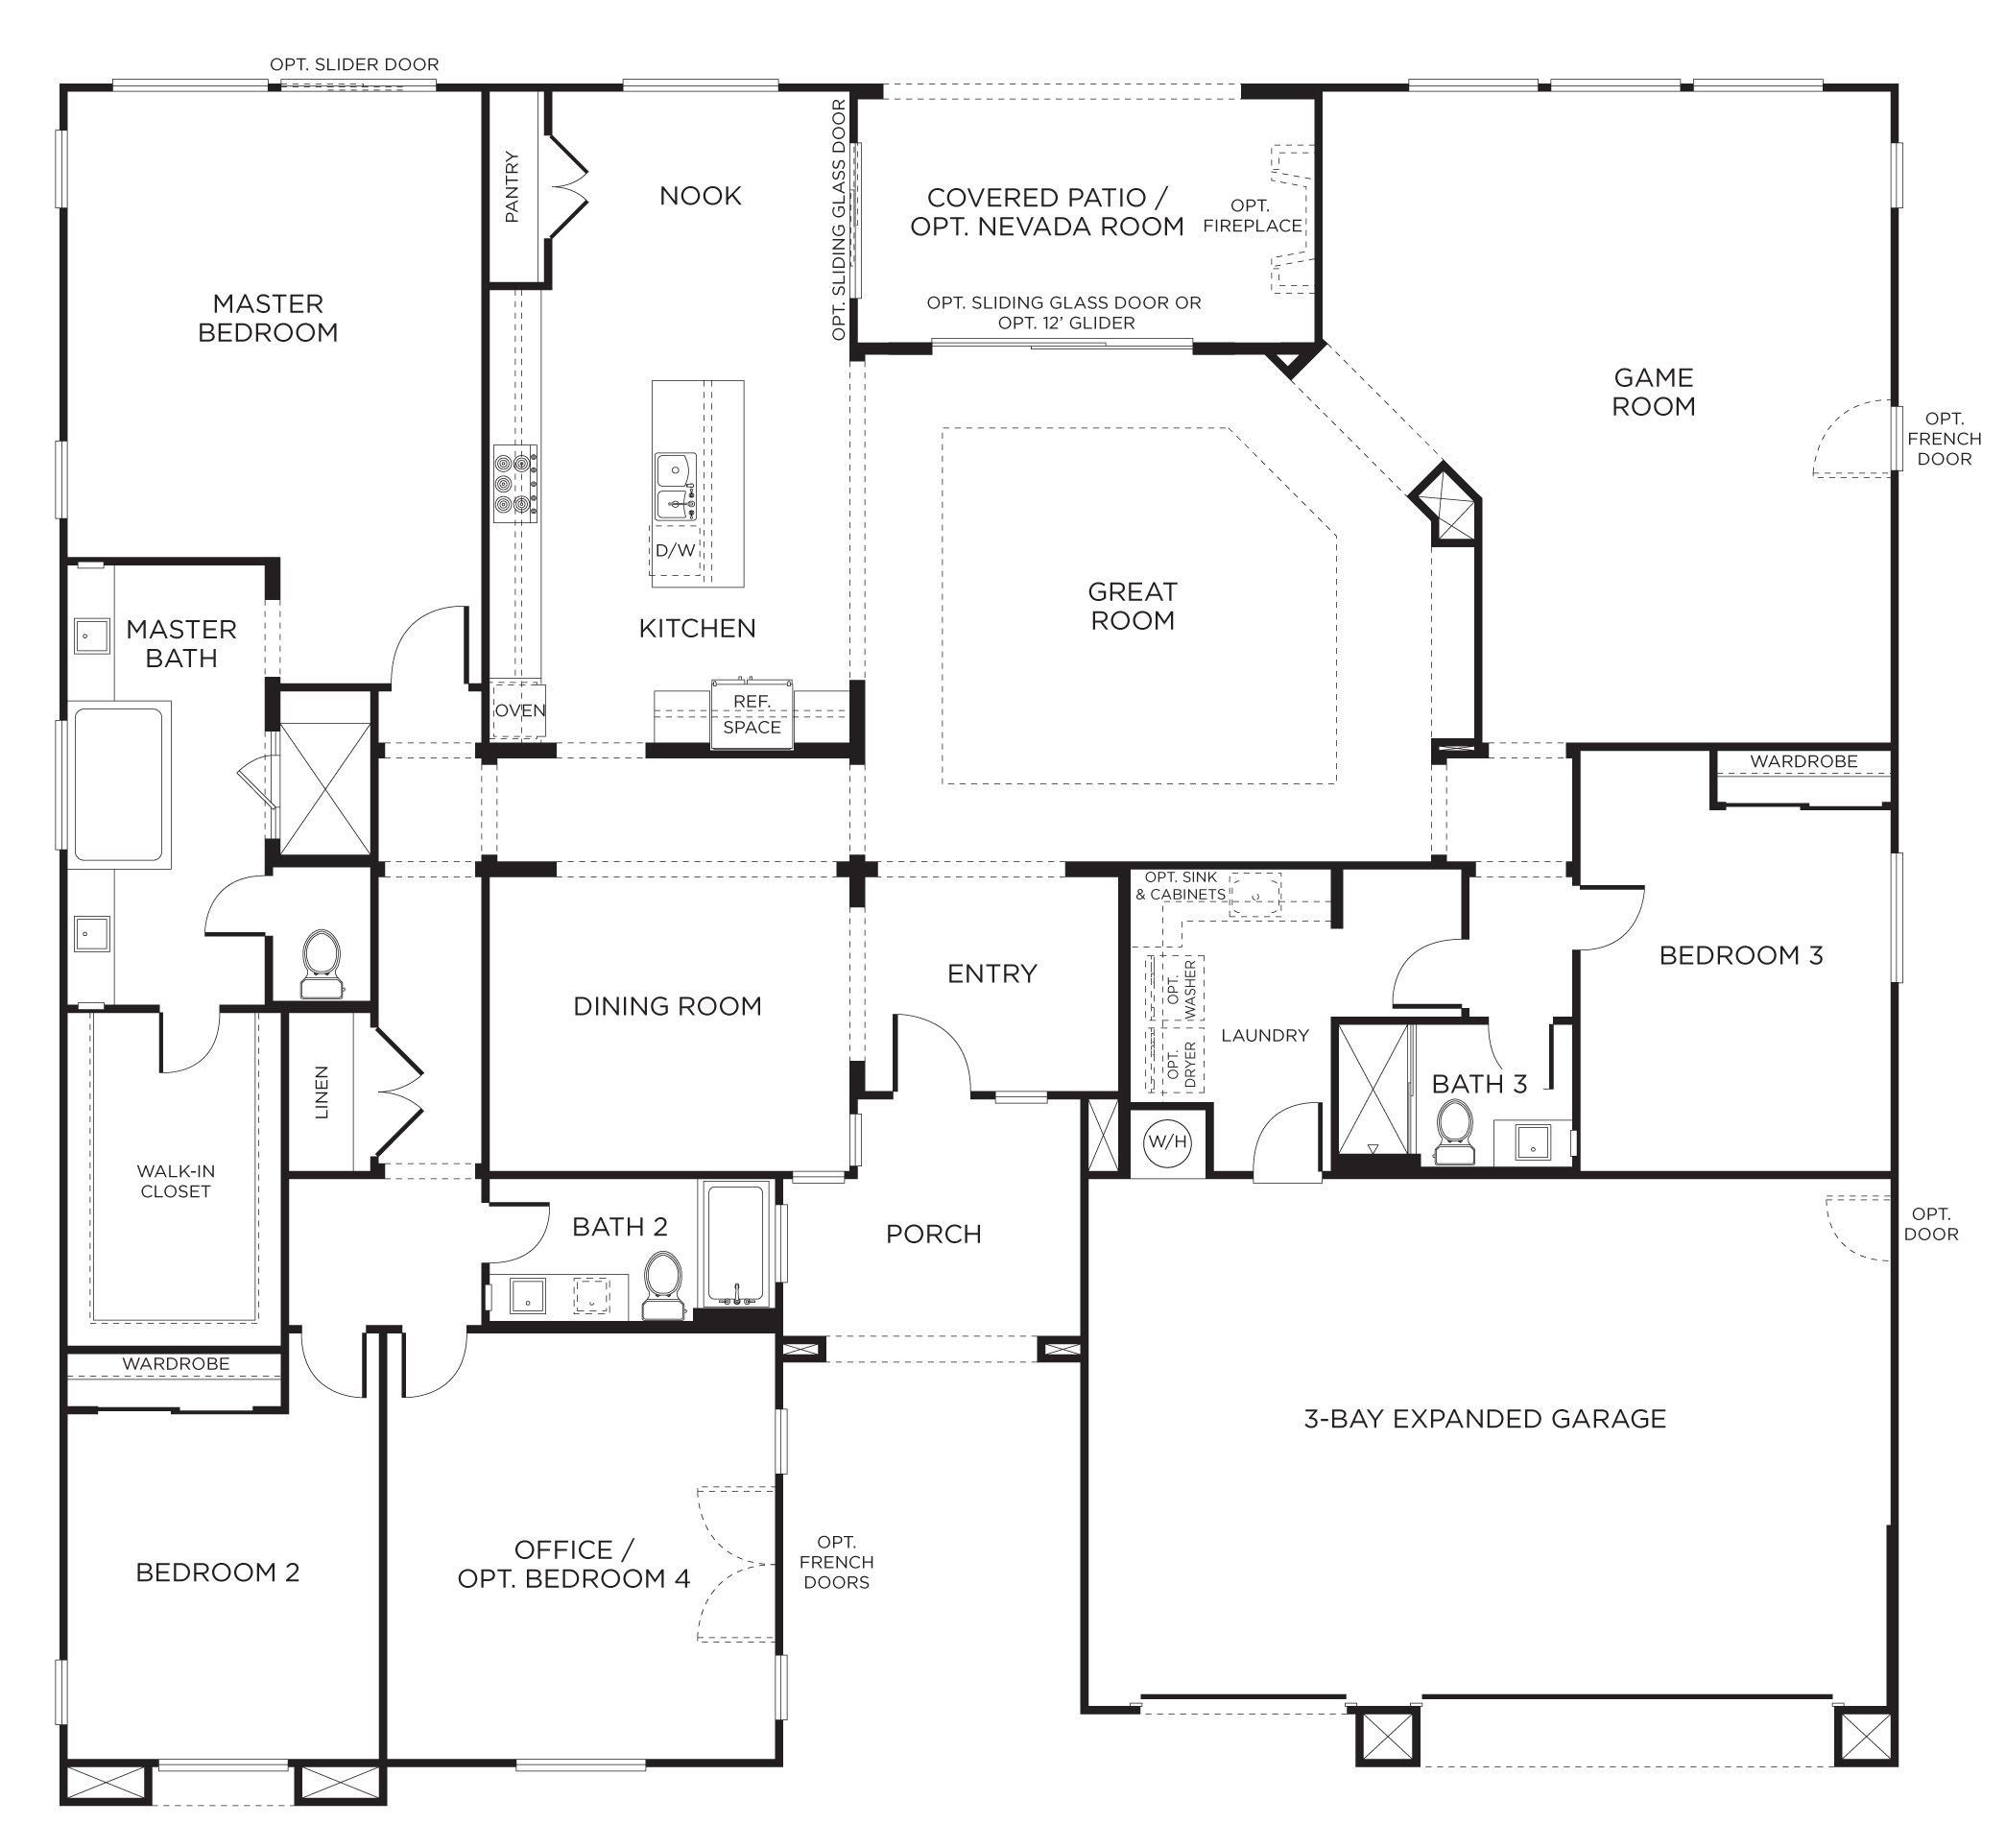 4 Bedroom Floor Plans Floorplan 2 3 4 Bedrooms 3 Bathrooms 3400 43 Square Feet